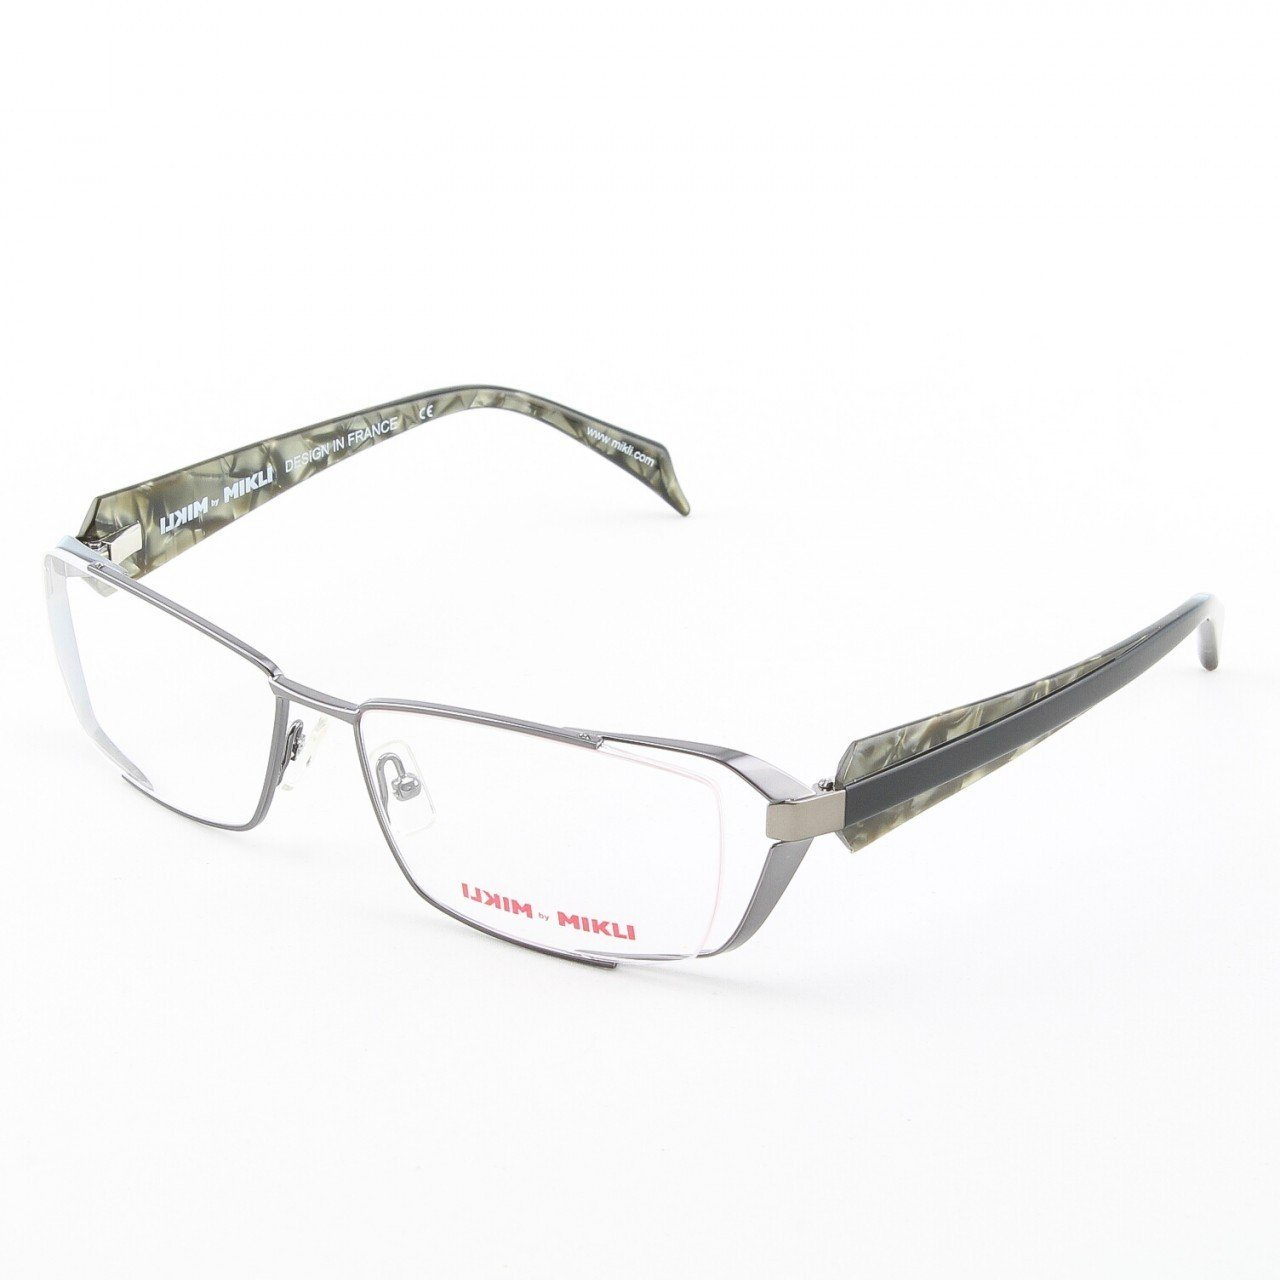 Alain Mikli Eyeglasses ML1039 Col. 3 Contemporary Black and Green Pearlized Temples